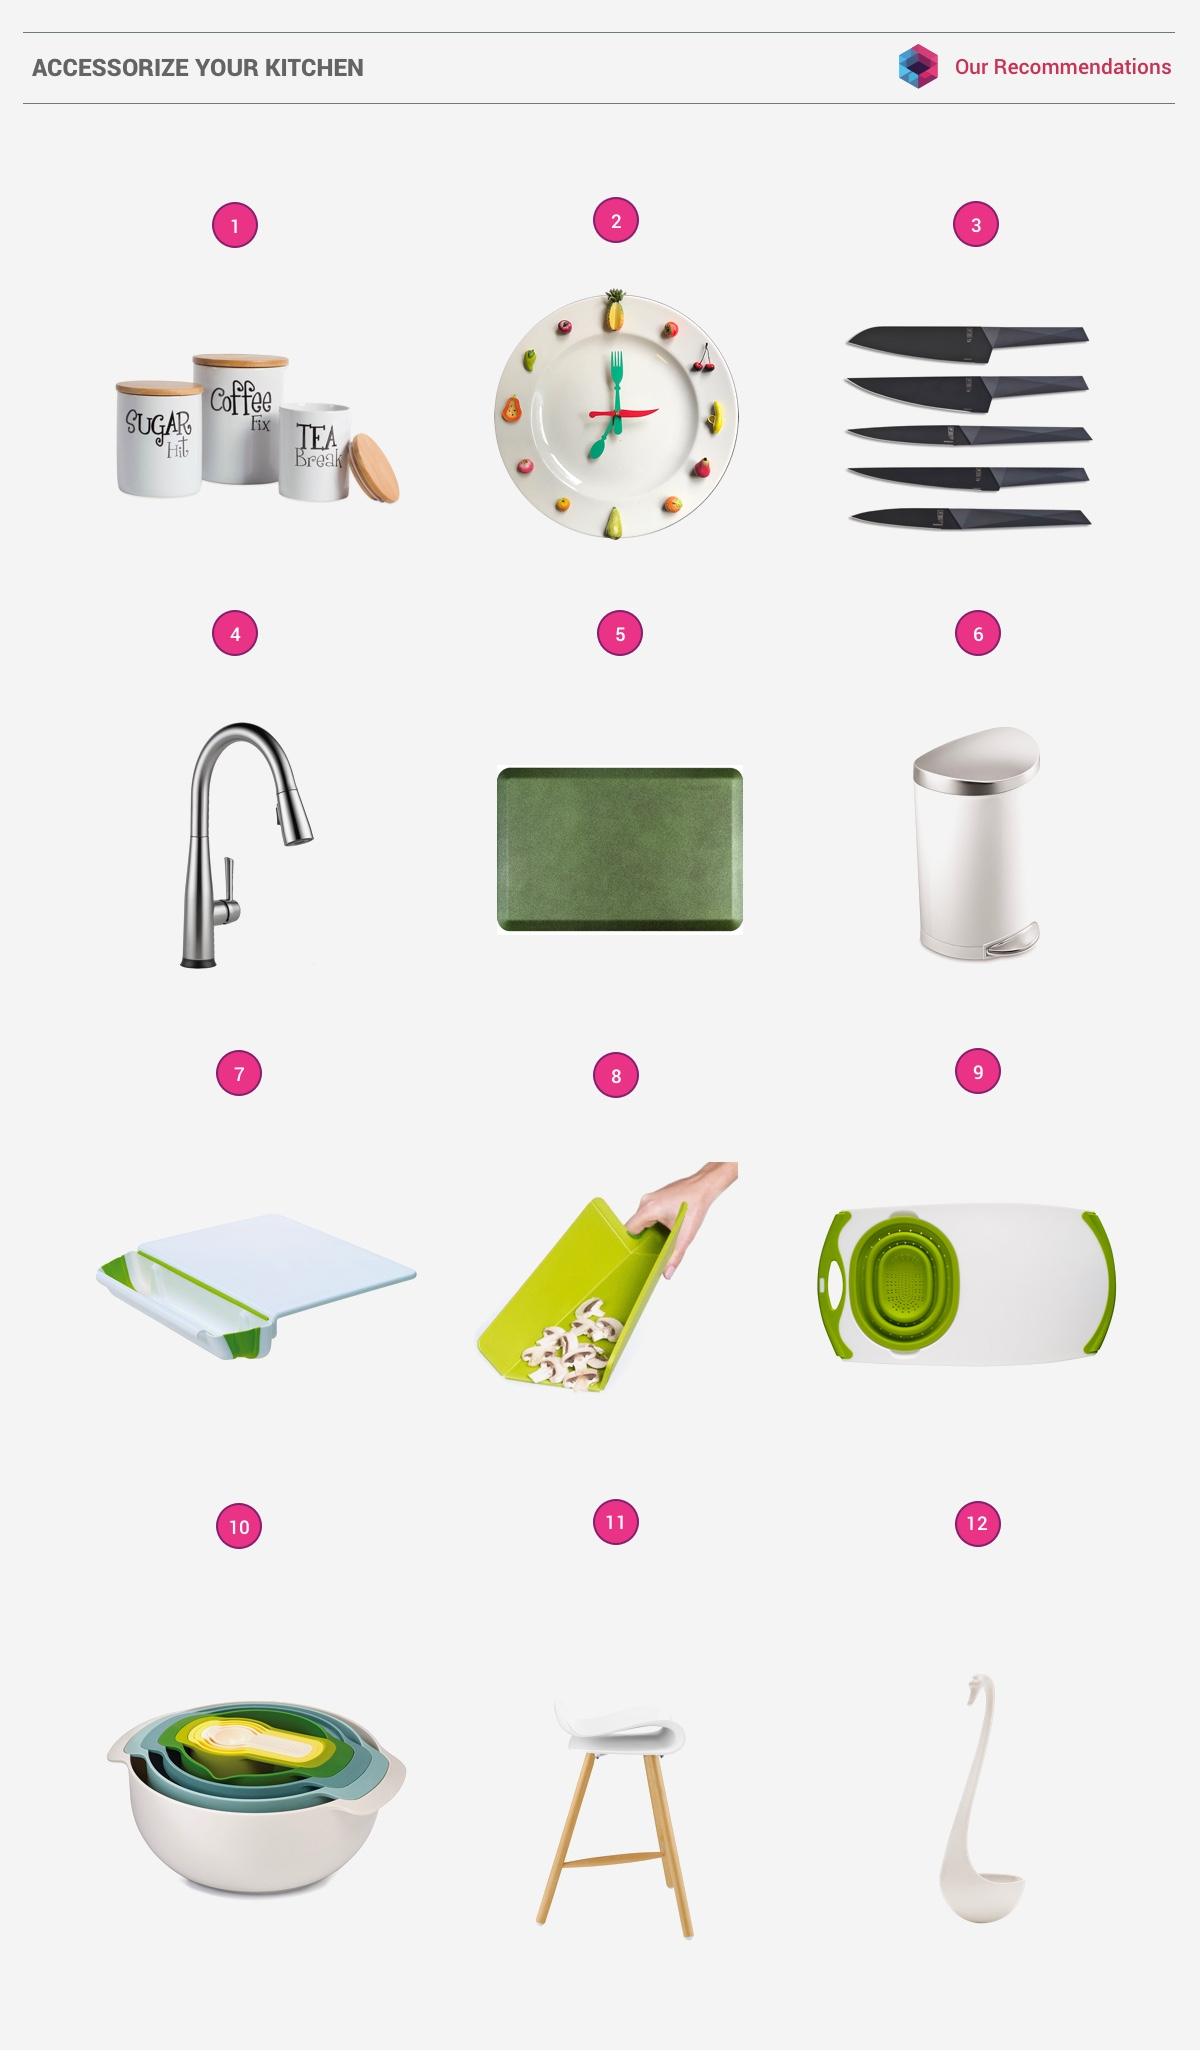 50 Unique U-Shaped Kitchens And Tips You Can Use From Them images 49